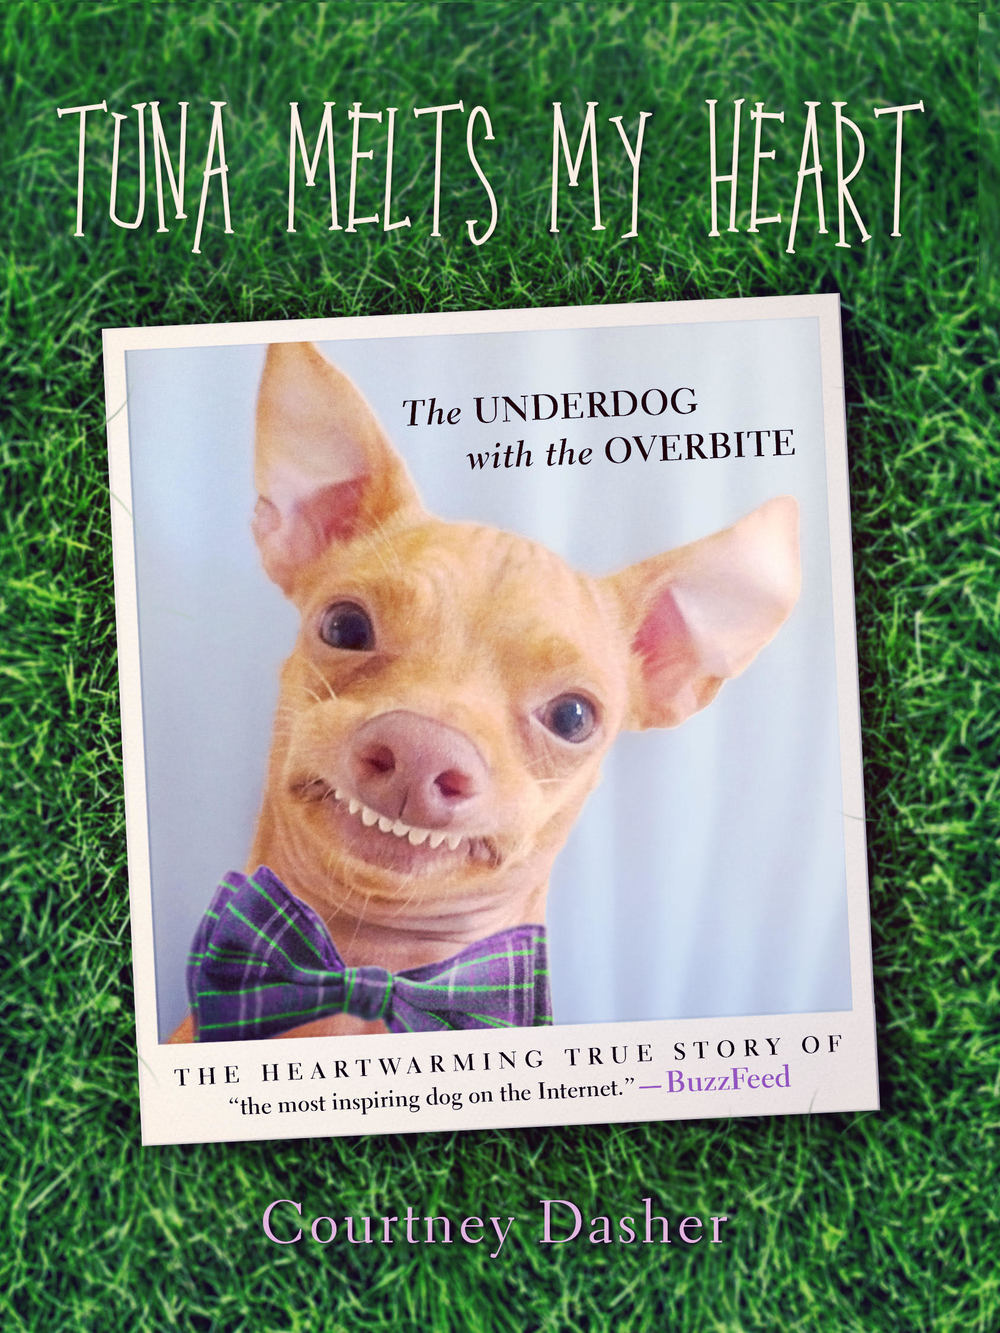 THE TUNA BOOK